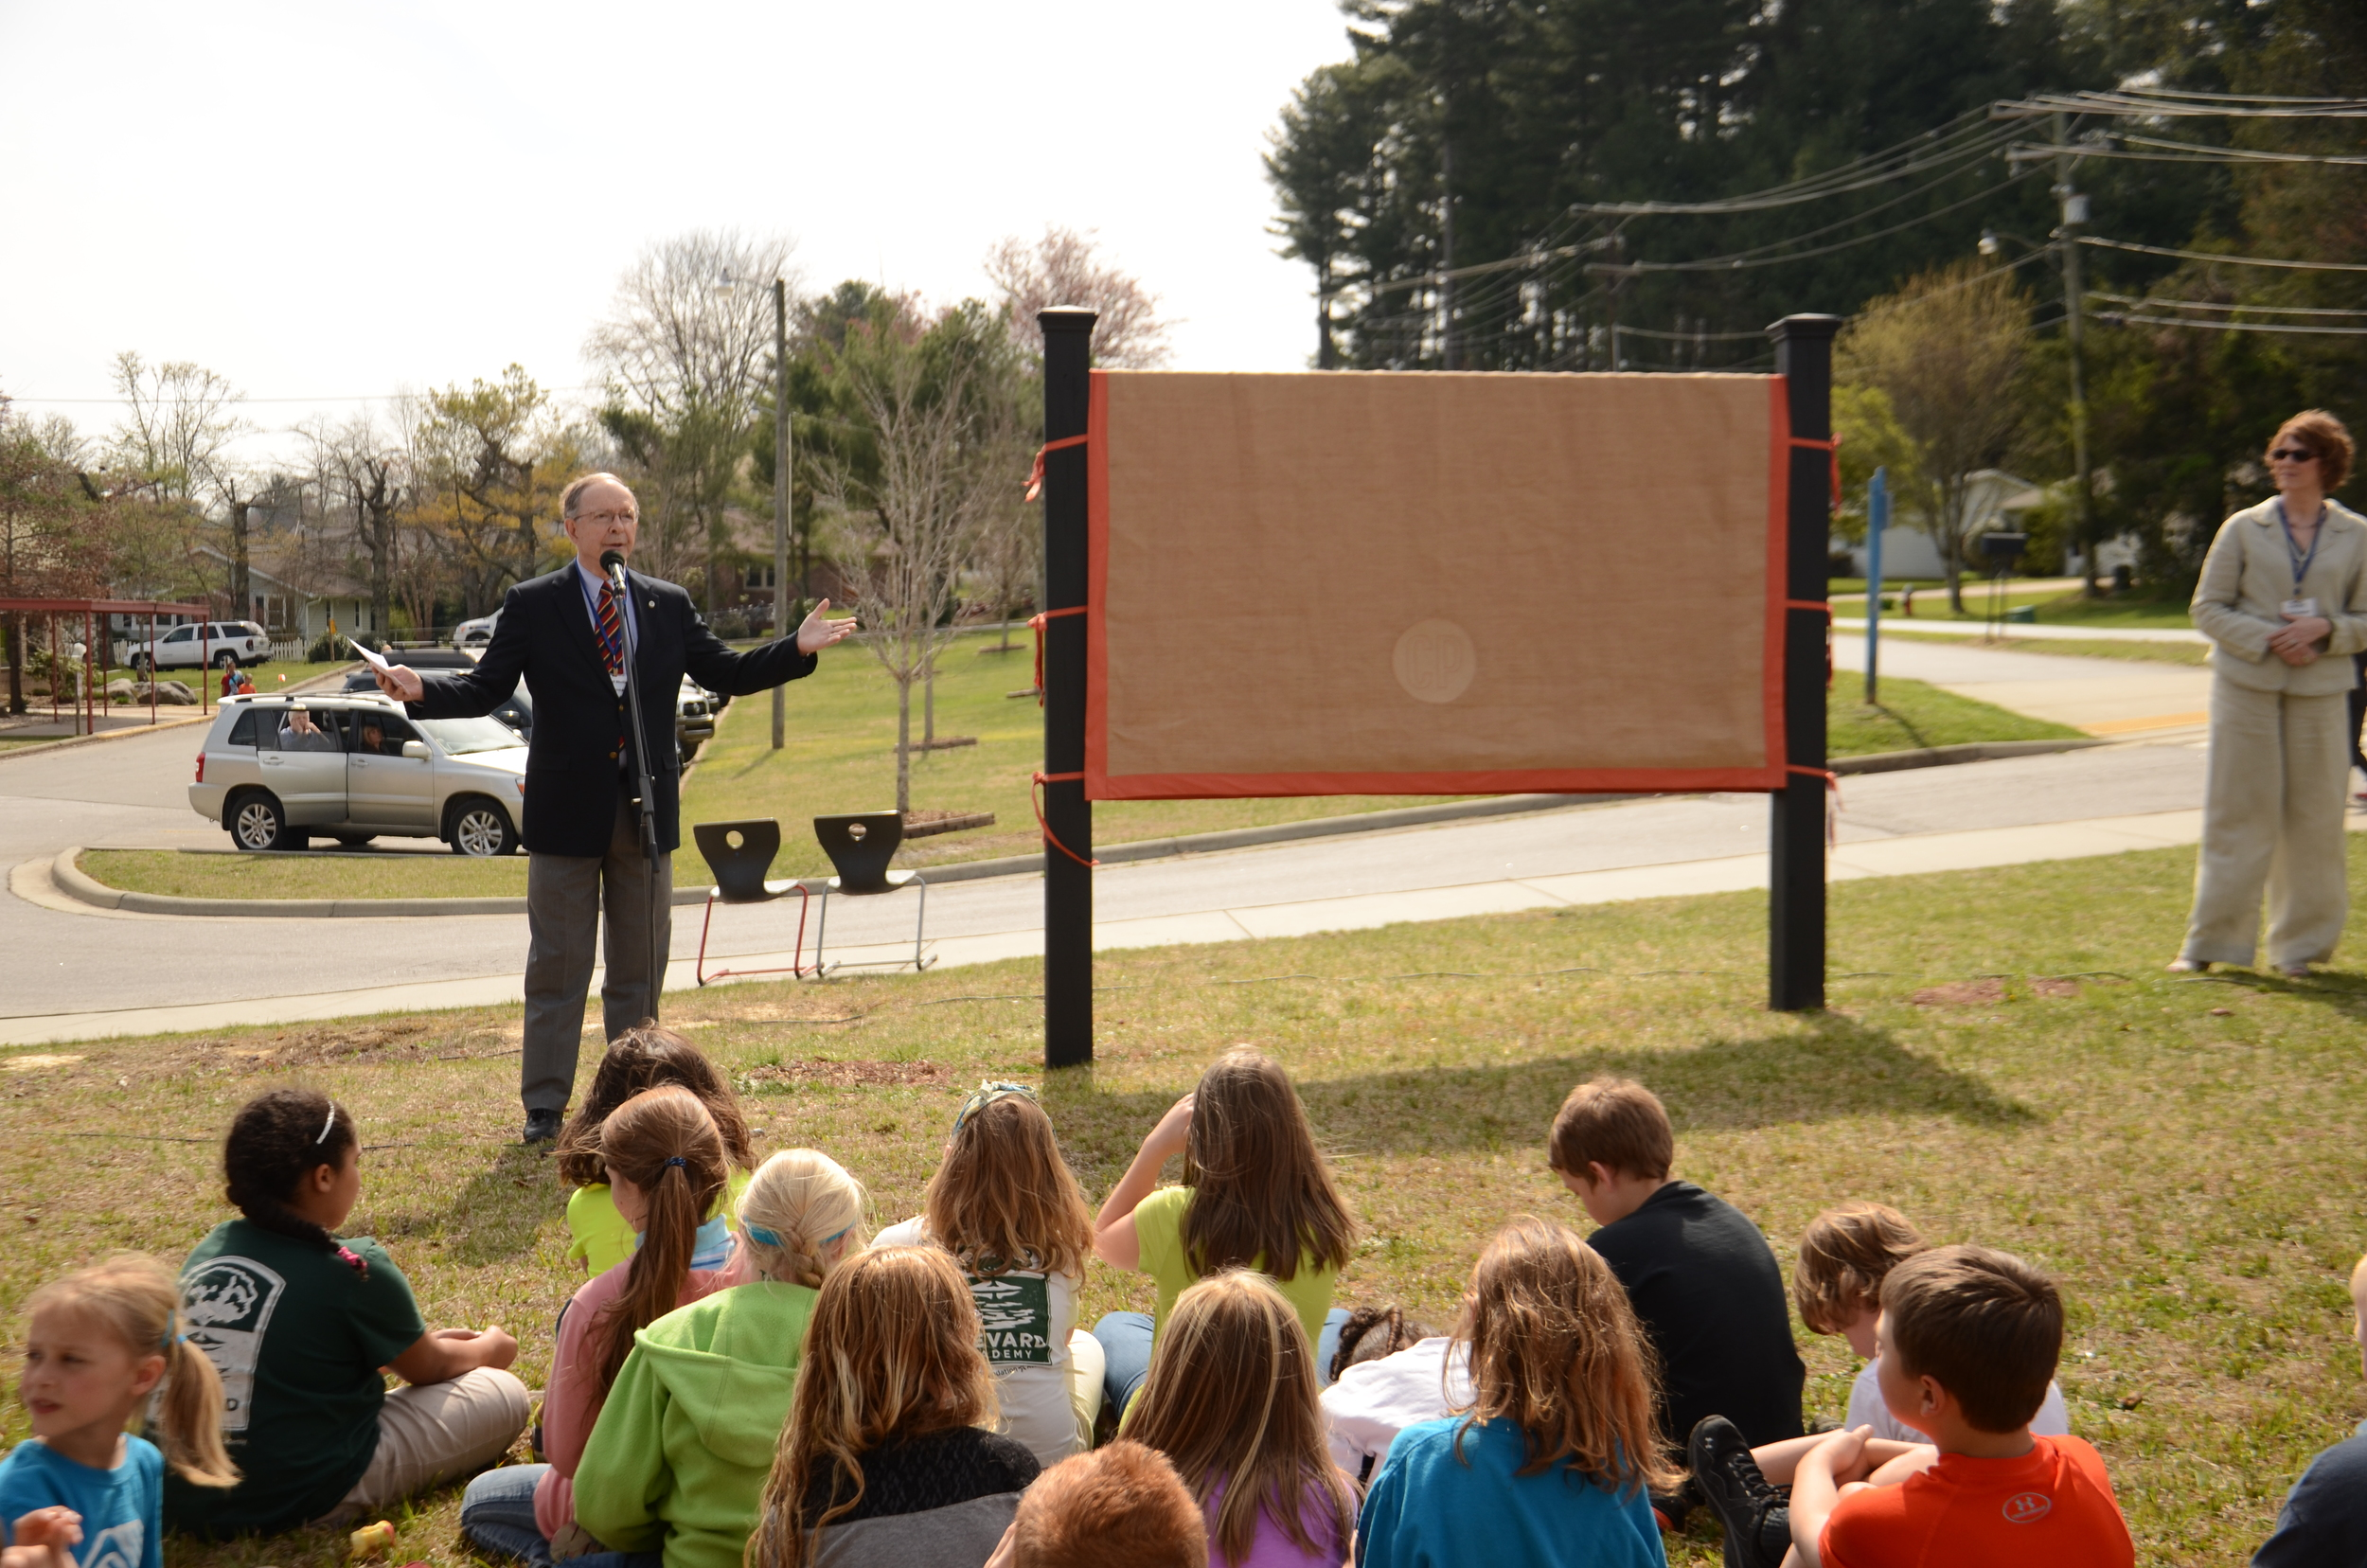 Unveiling of the Club's new name, The Cindy Platt Boys & Girls Club of Transylvania County in 2014.